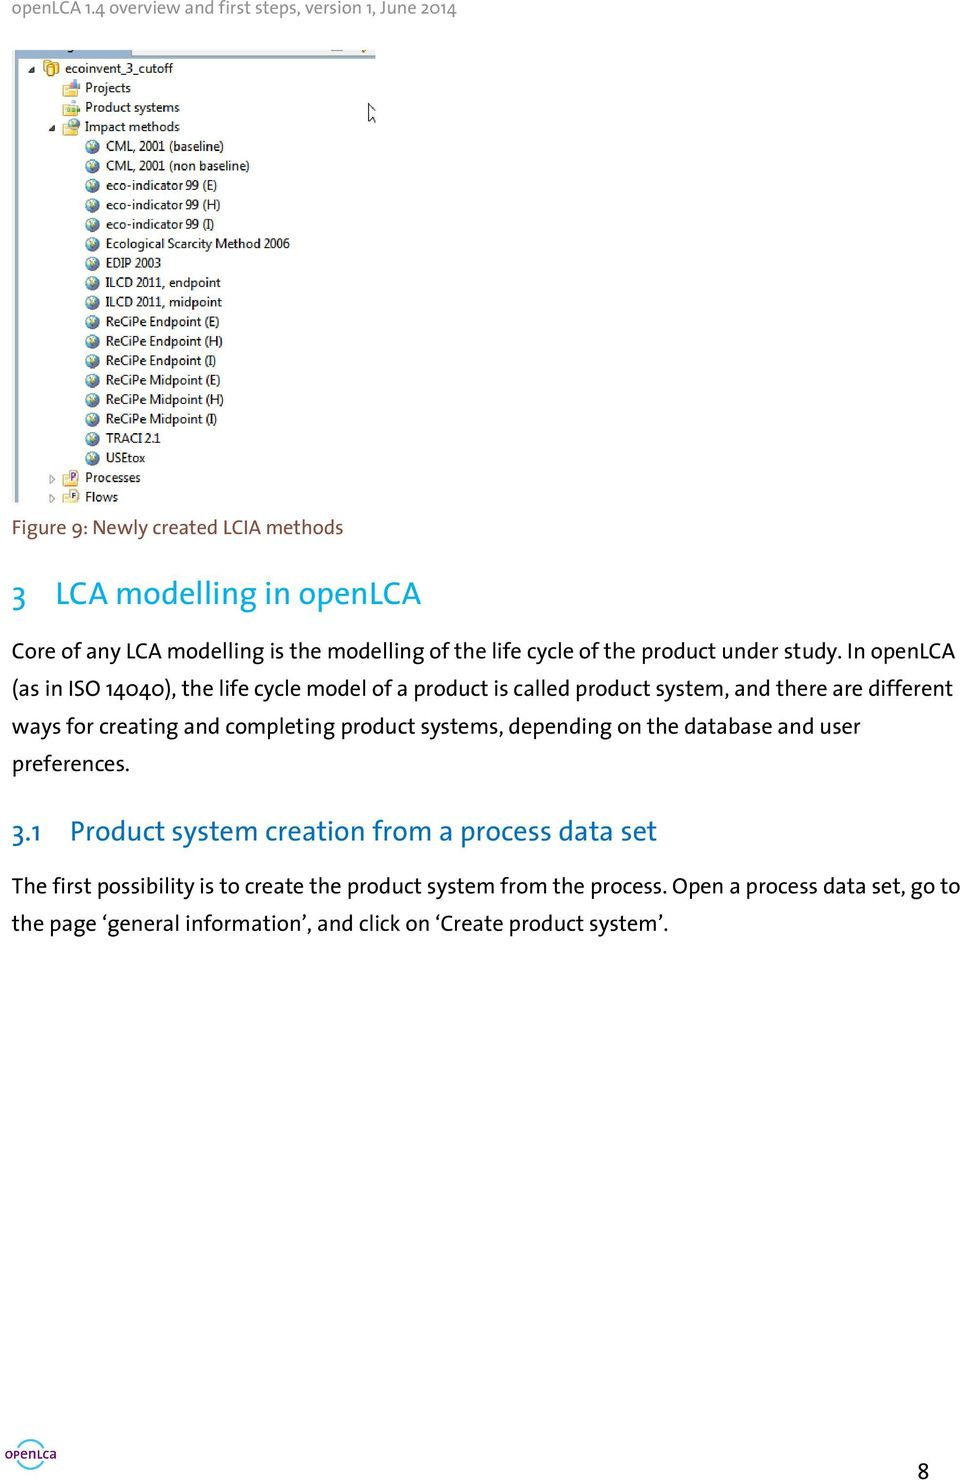 In openlca (as in ISO 14040), the life cycle model of a product is called product system, and there are different ways for creating and completing